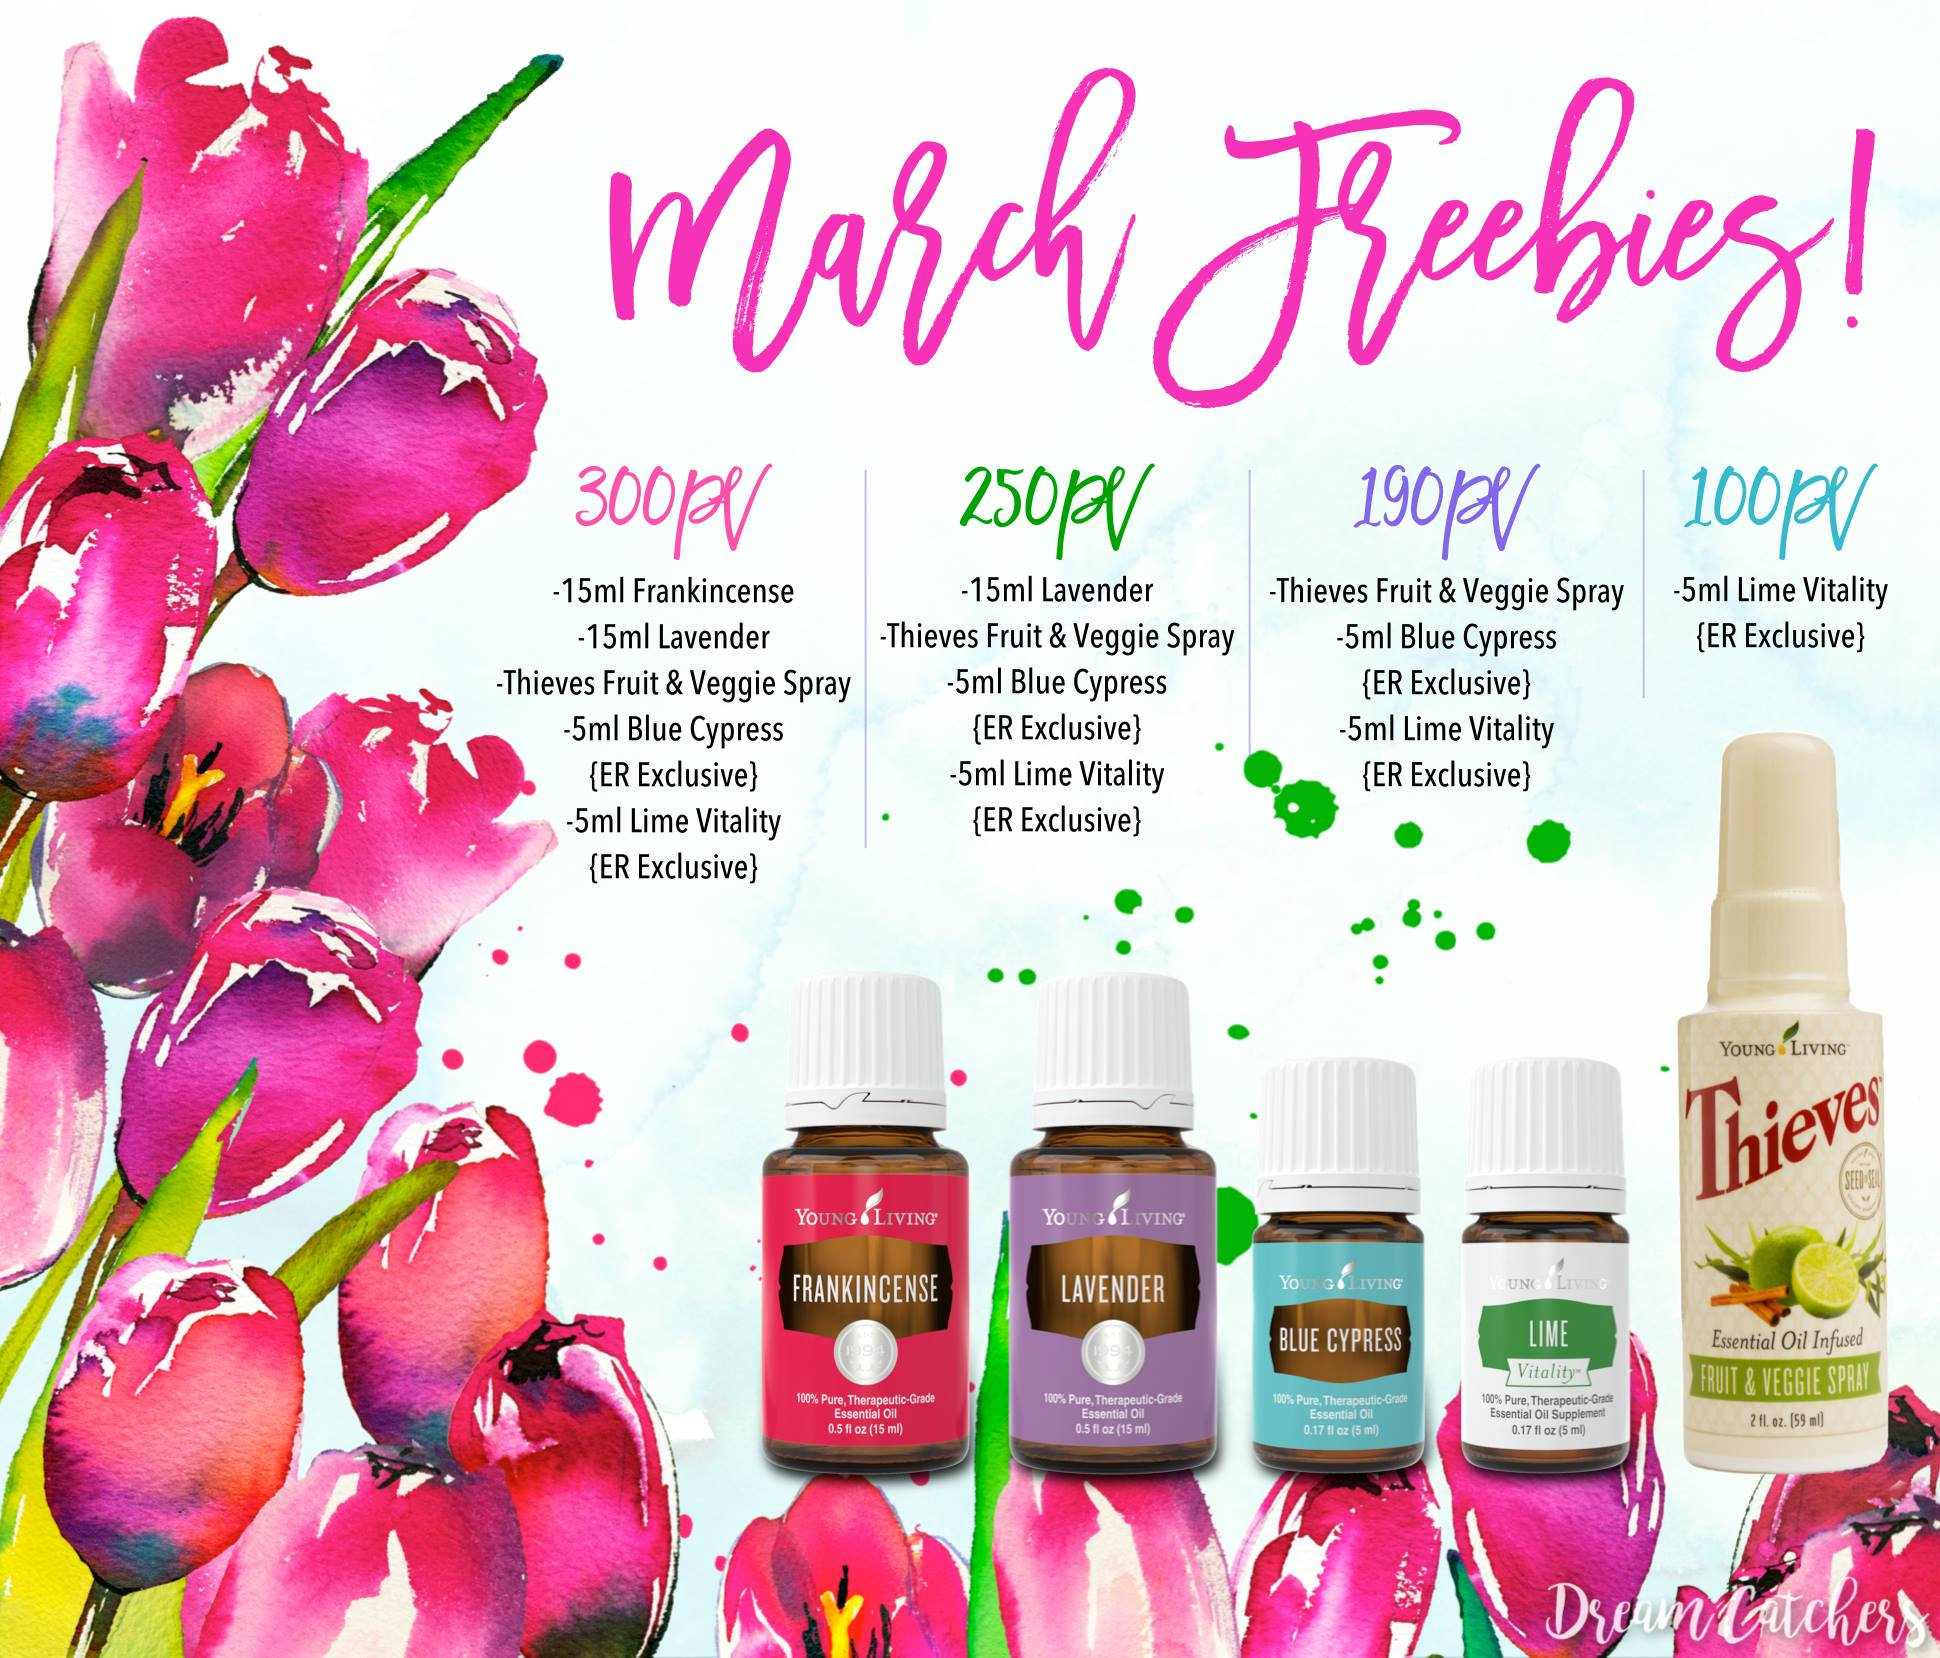 March Promotion from Young Living | Decorchick!®